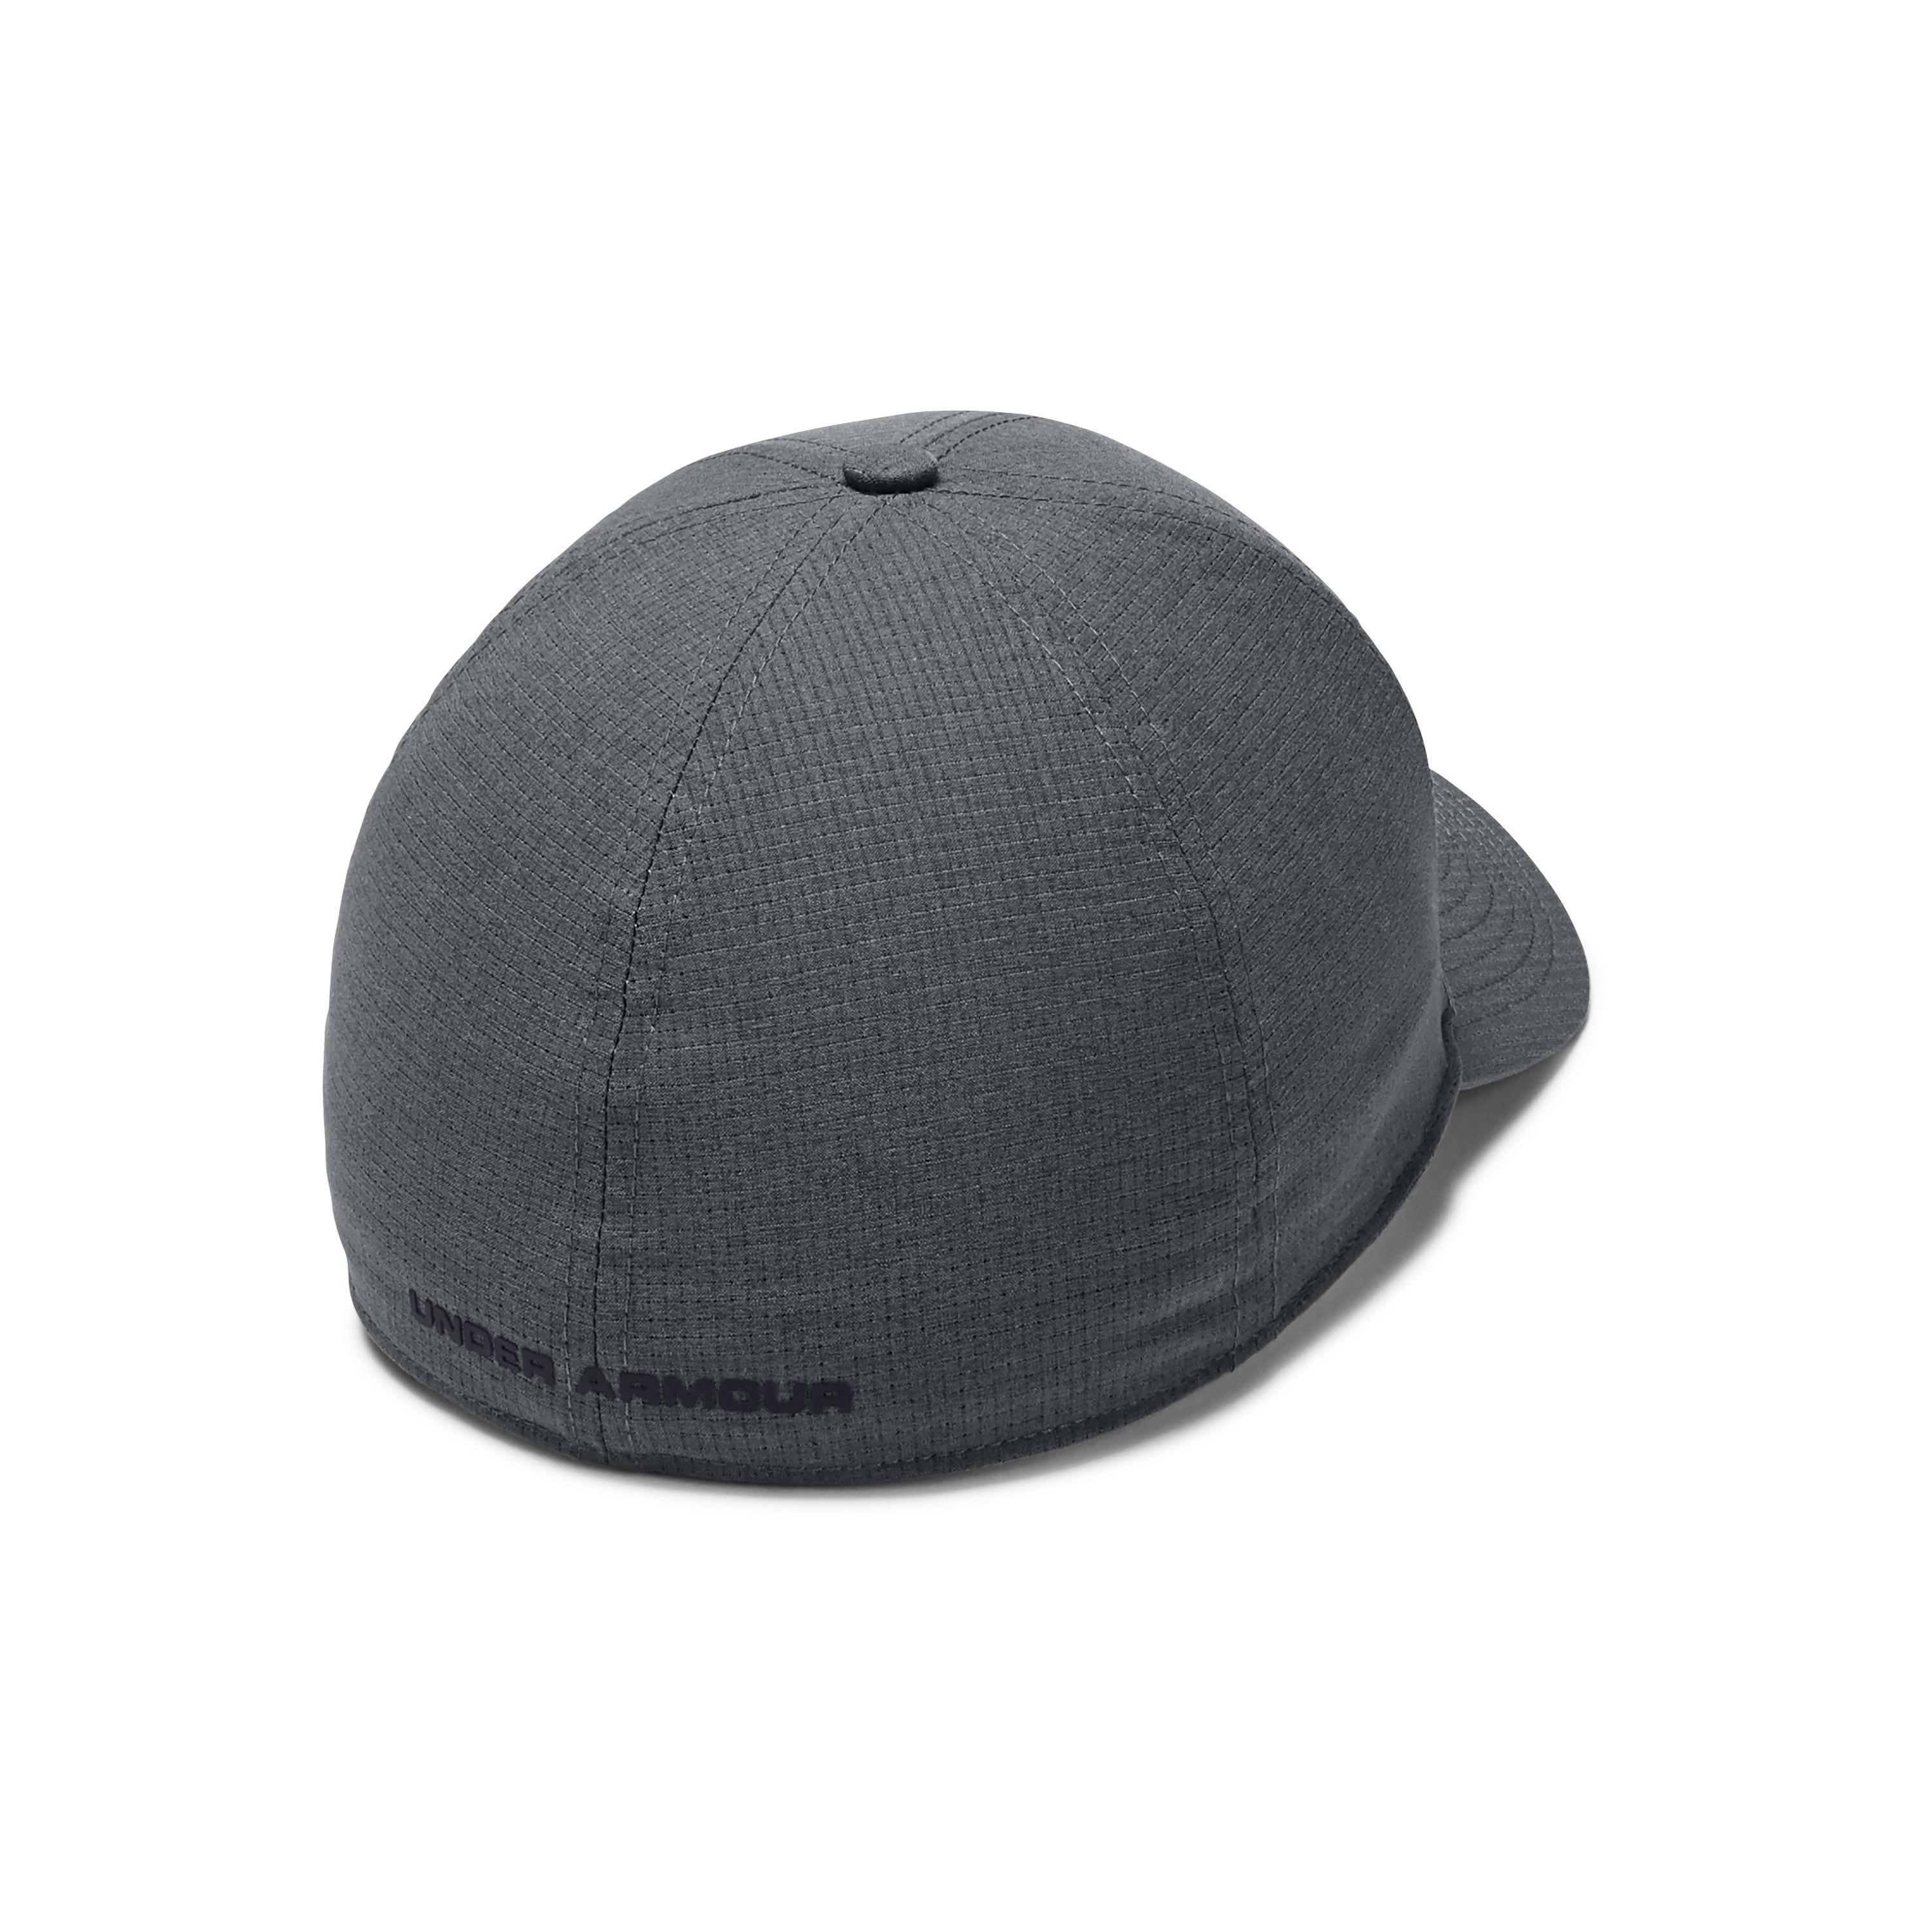 673a87f0ea6d1 Under Armour - Gray Men s Ua Fish Coolswitch Armourventtm Cap for Men -  Lyst. View fullscreen